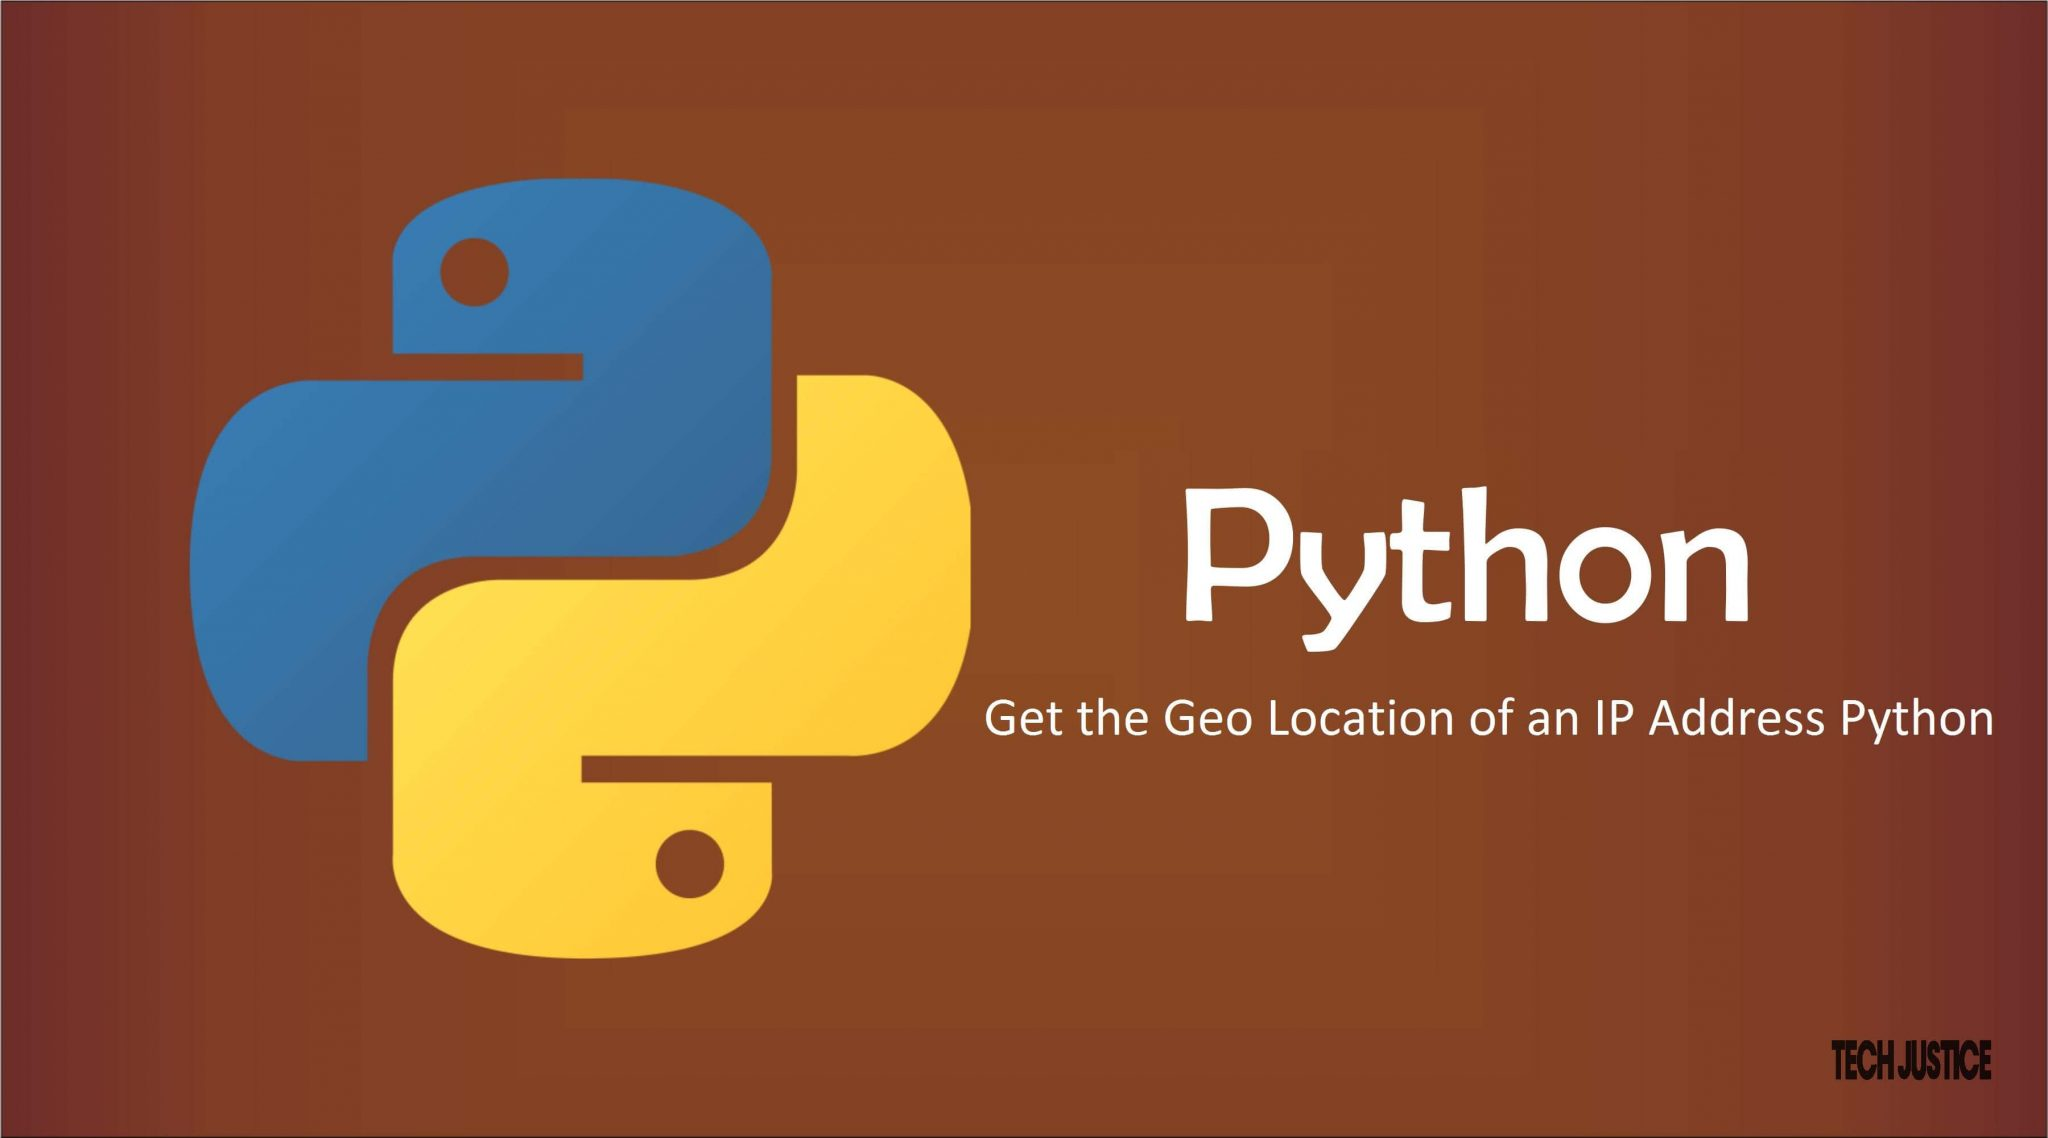 python Get the Geo Location of an IP Address Python tech justice.jpg